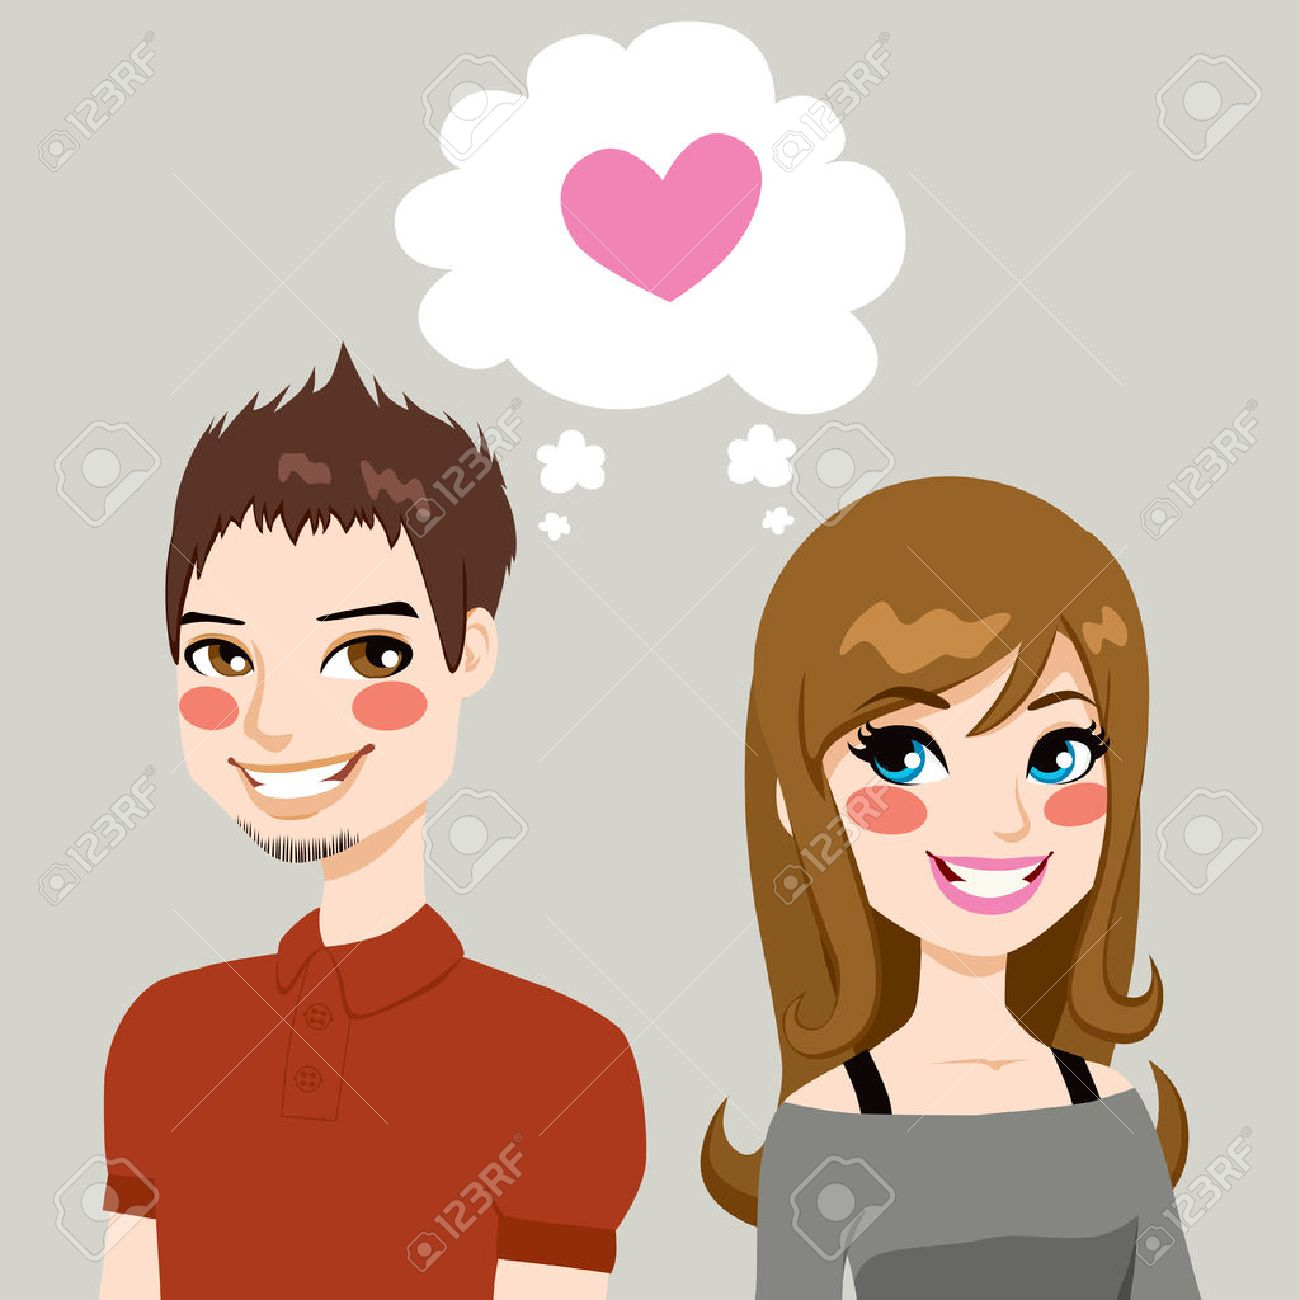 Concept illustration of a man and a woman side by side make eye contact and falling in love together - 22964394